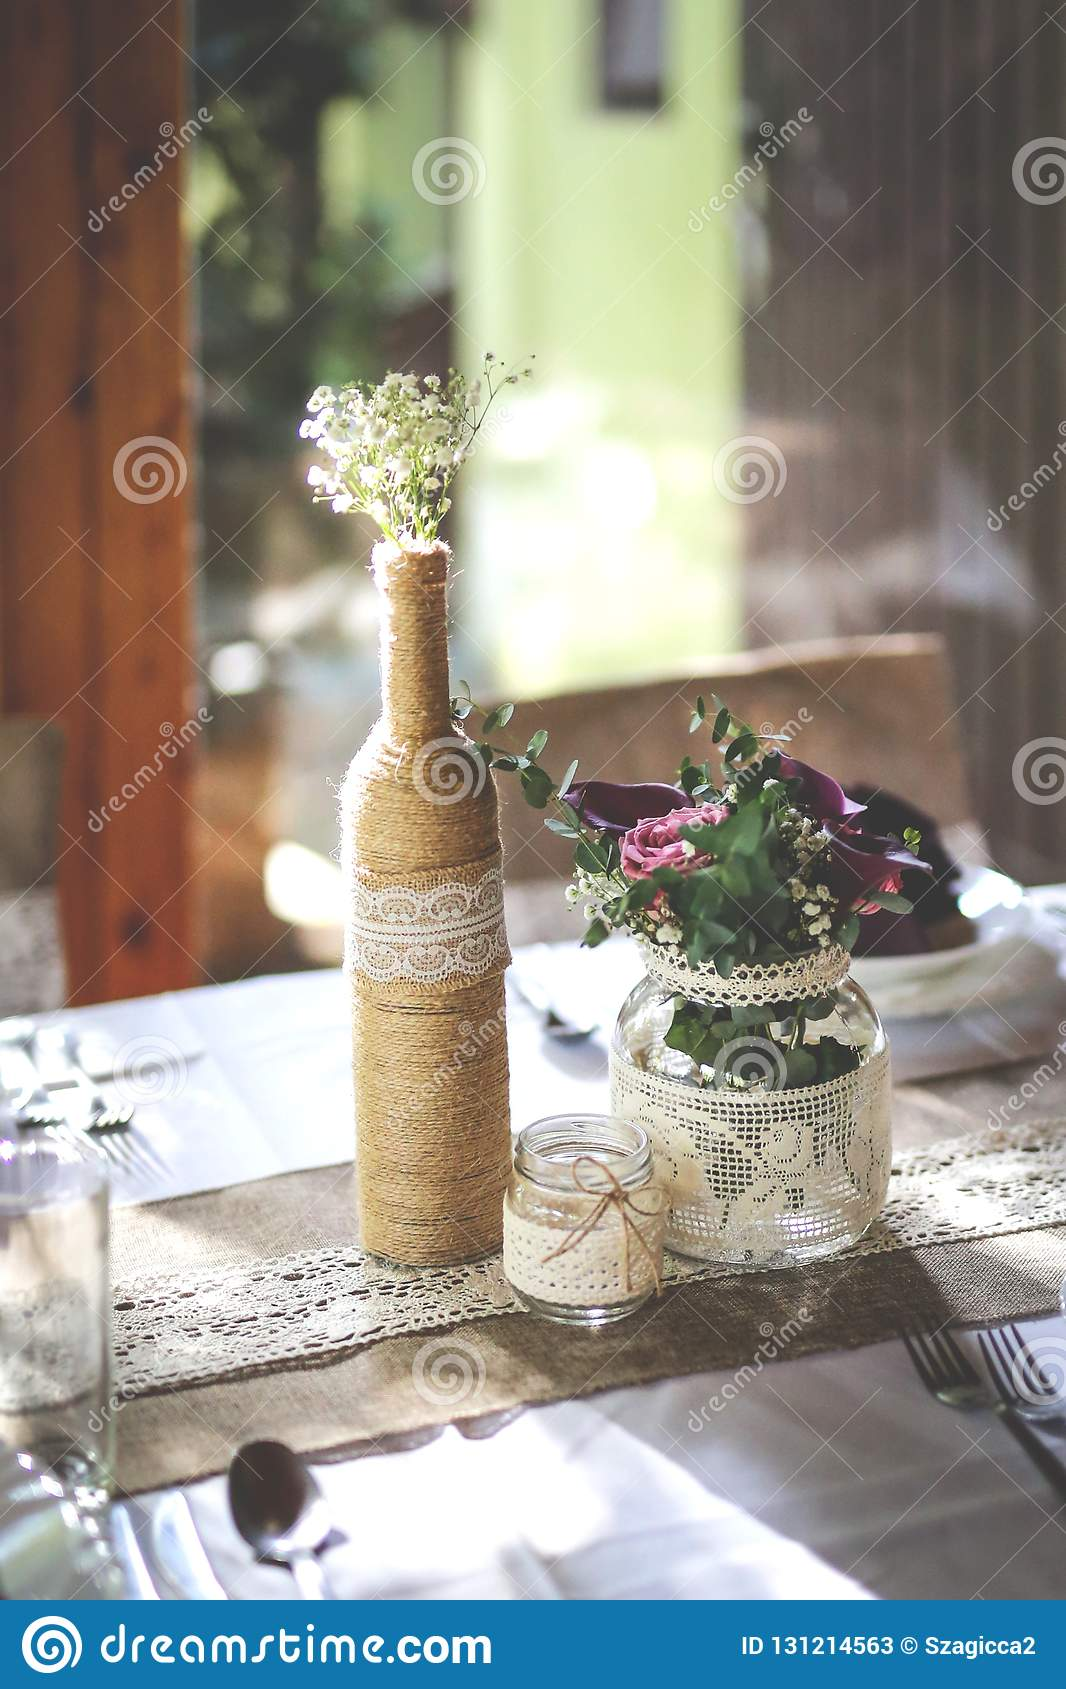 Rustic Wedding Table Set With Glass Bottle And Bouquet Stock Image Image Of Glass Date 131214563